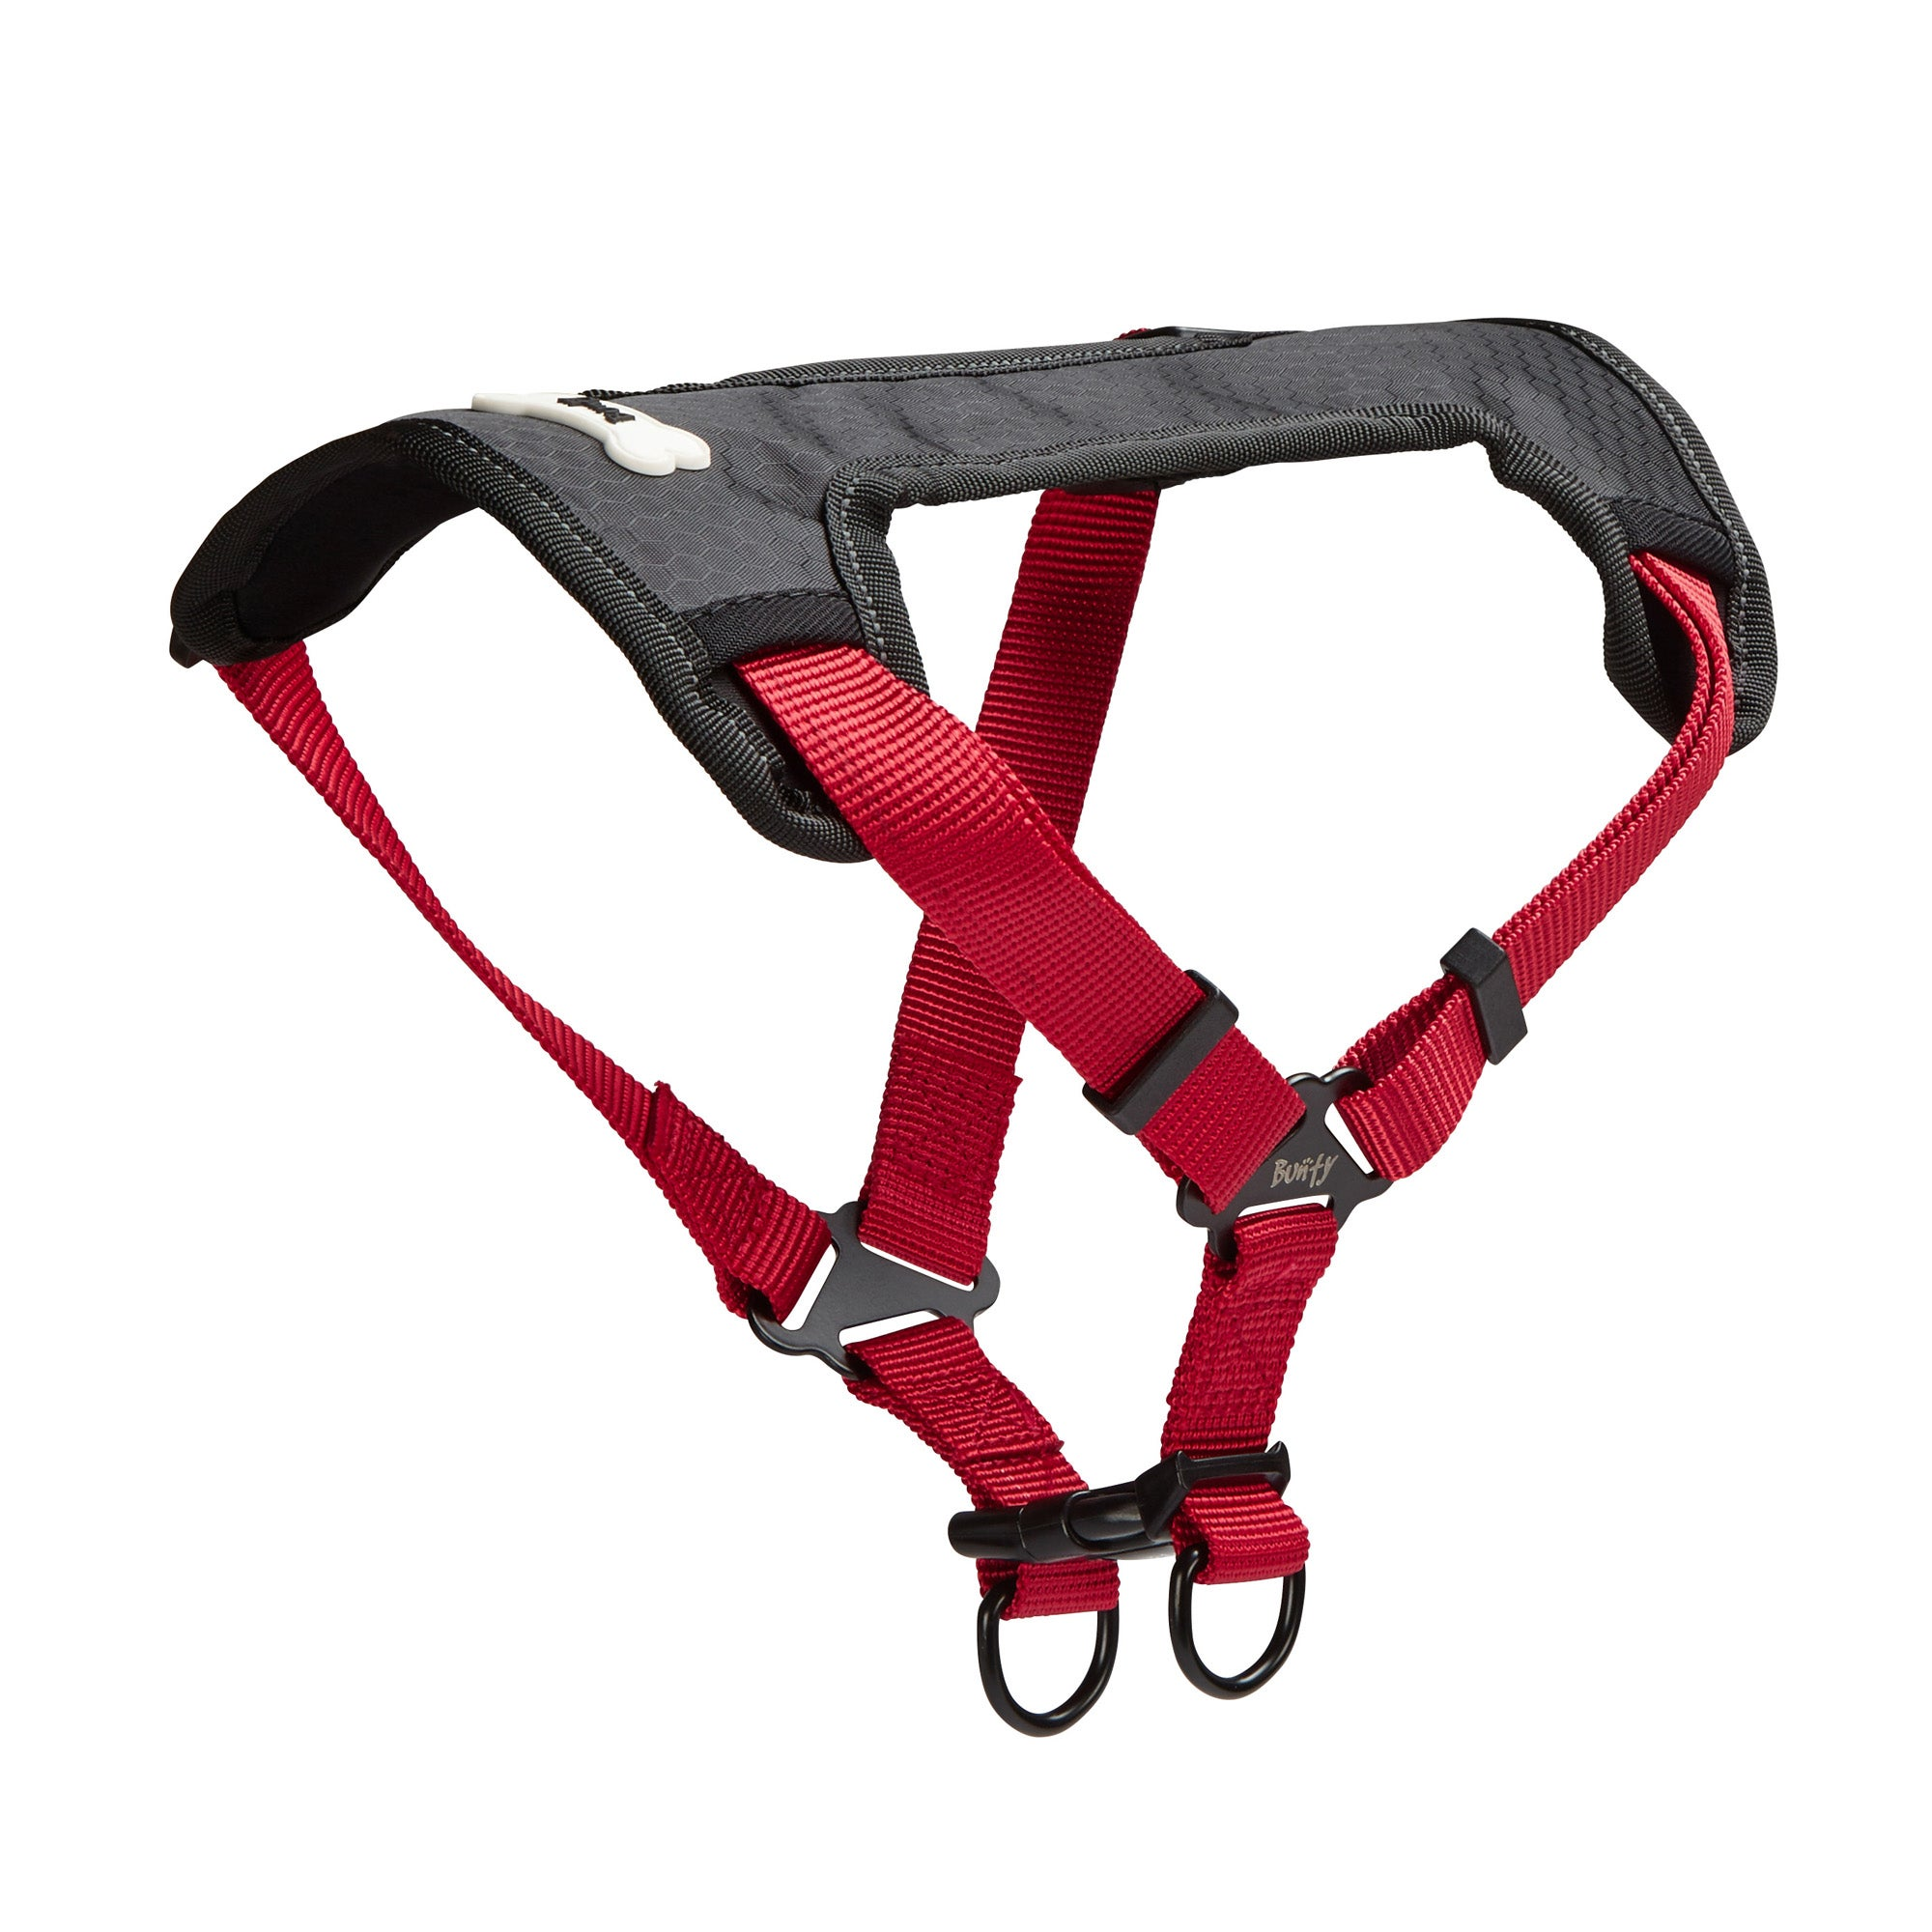 Bunty Red Strap 'N' Strole Dog Harness Red